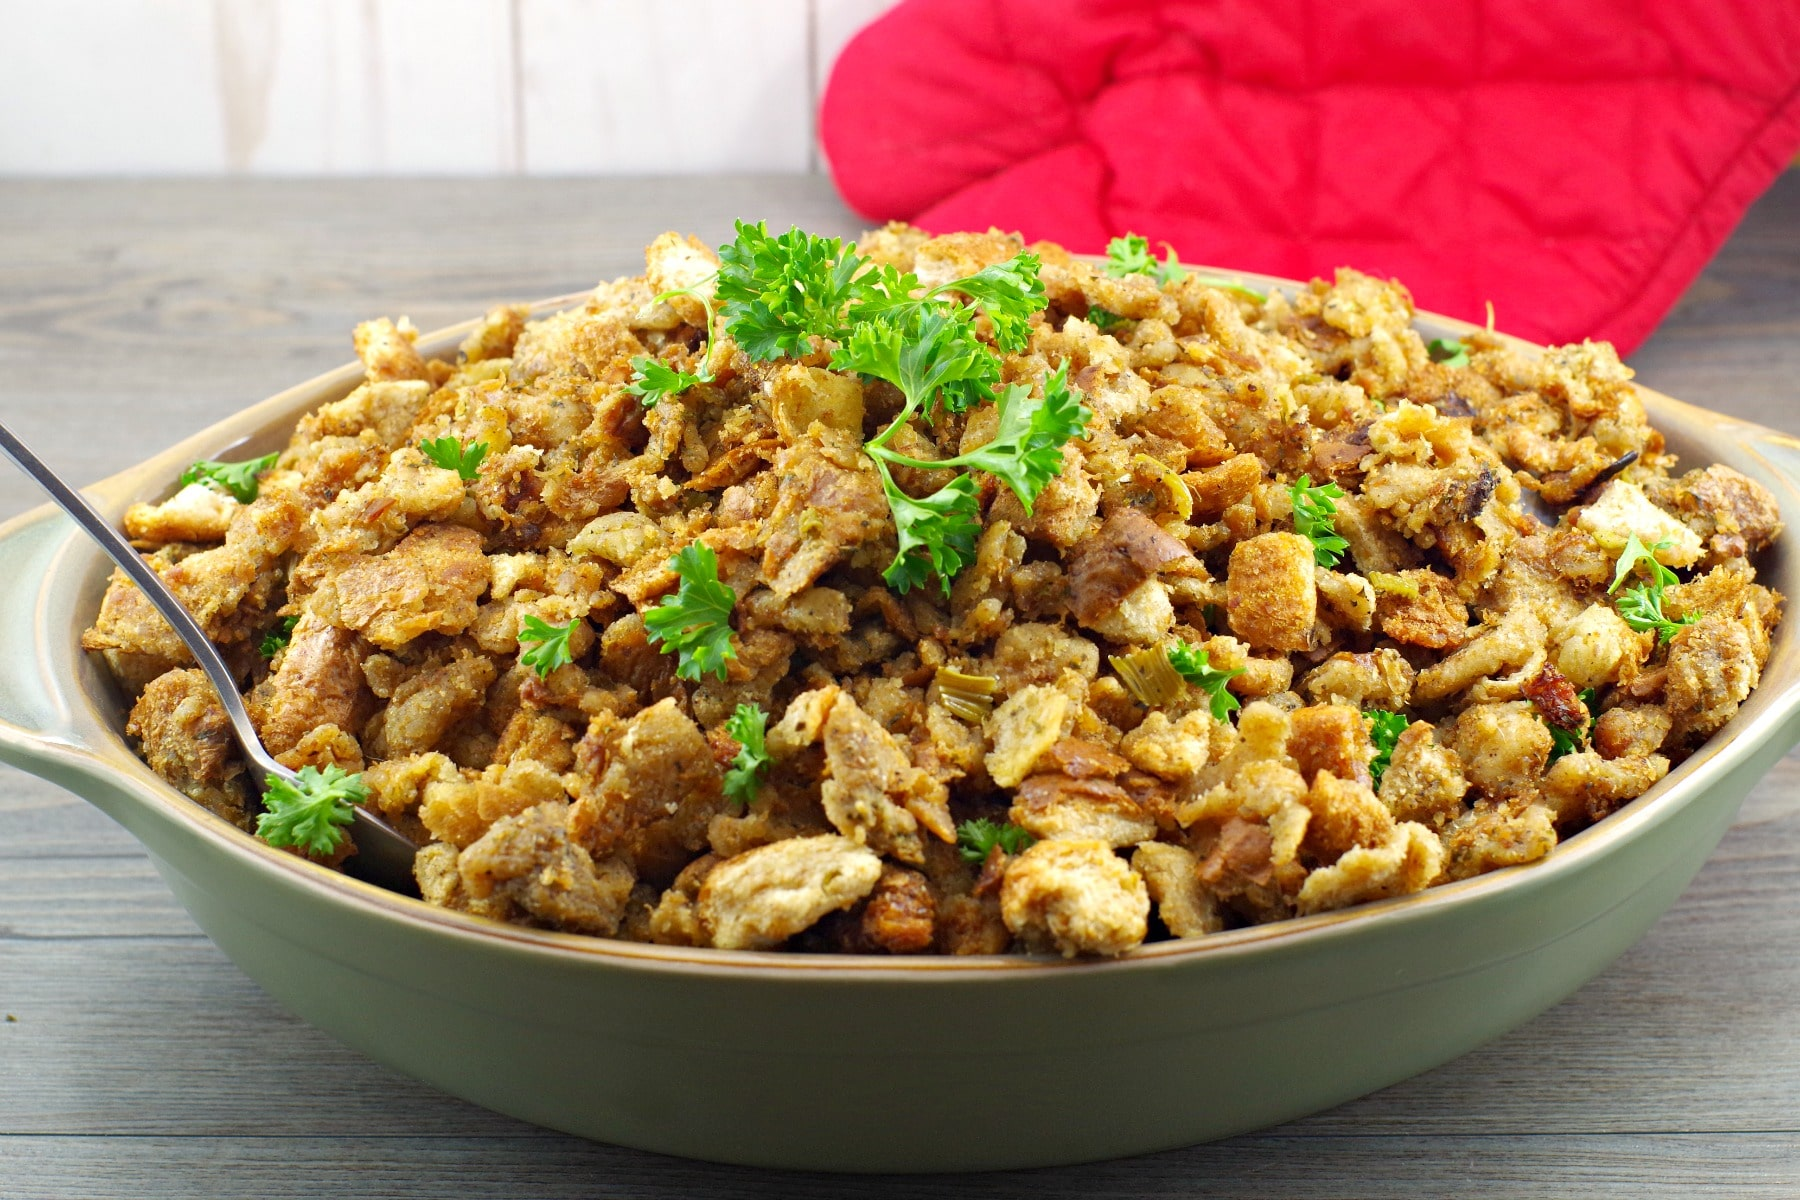 Old fashioned bread stuffing in green dish